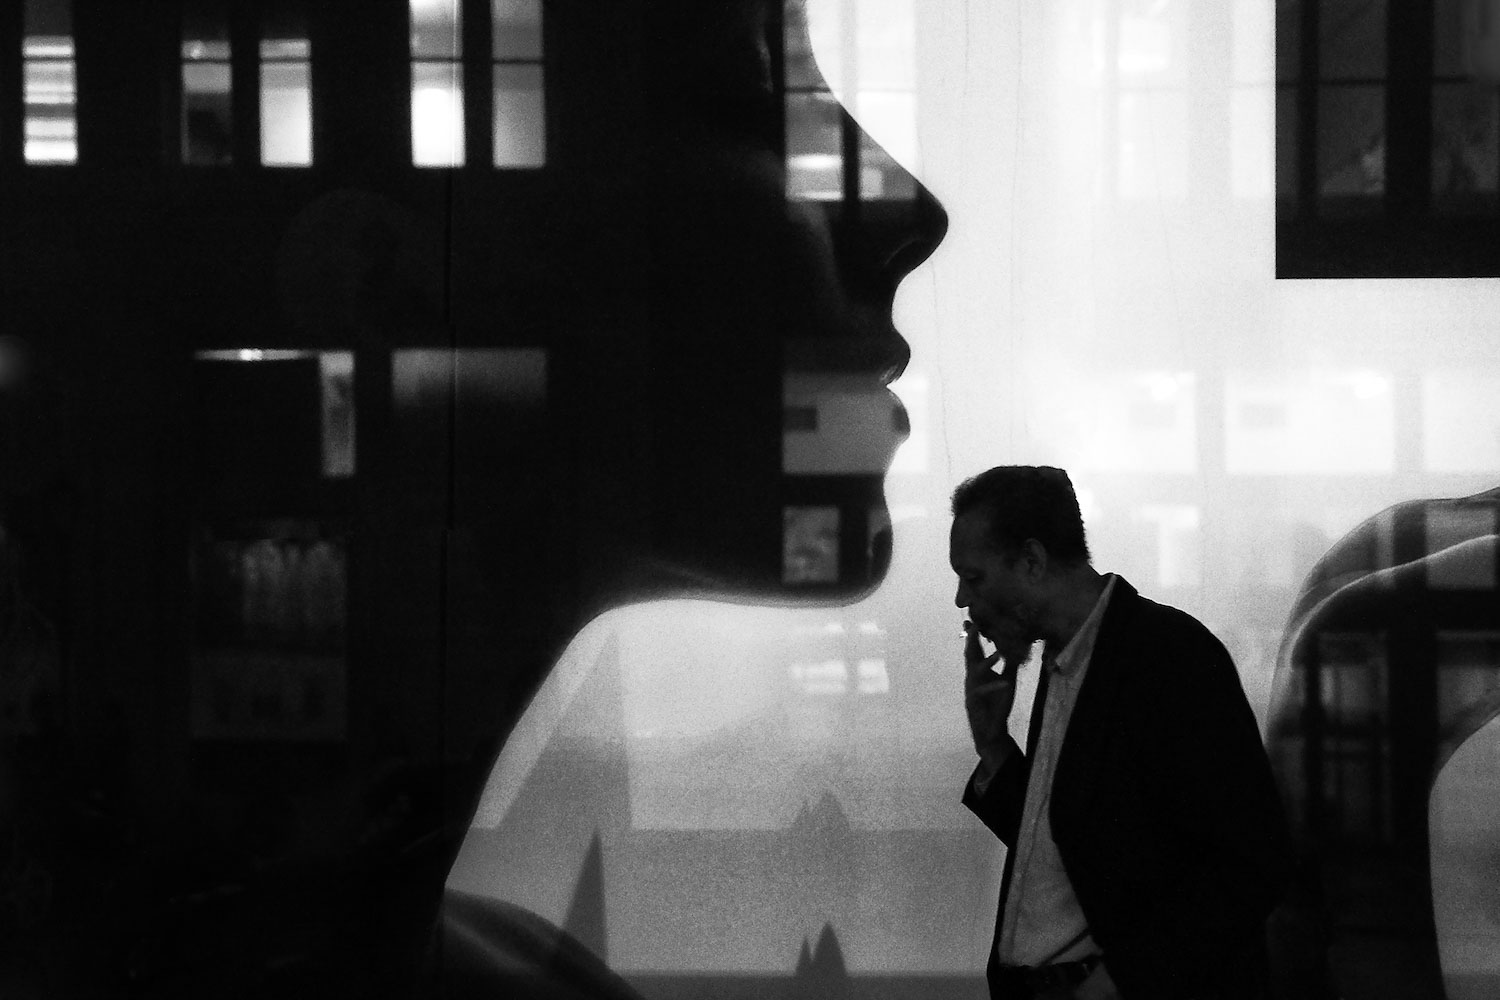 street street photo street photography life is street Melissa Breyer photographie de rue